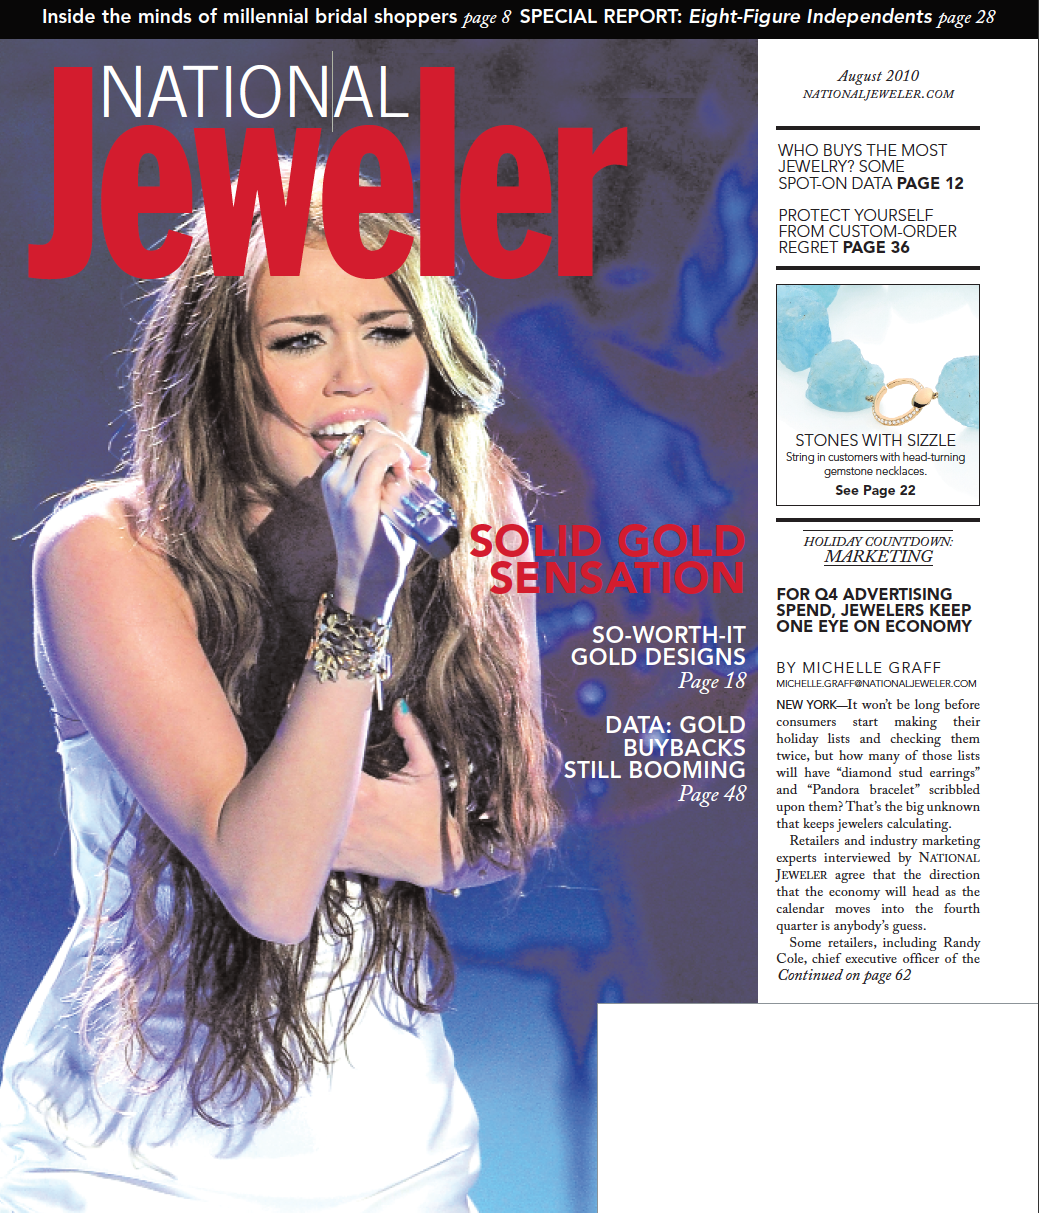 National Jeweler August 2010